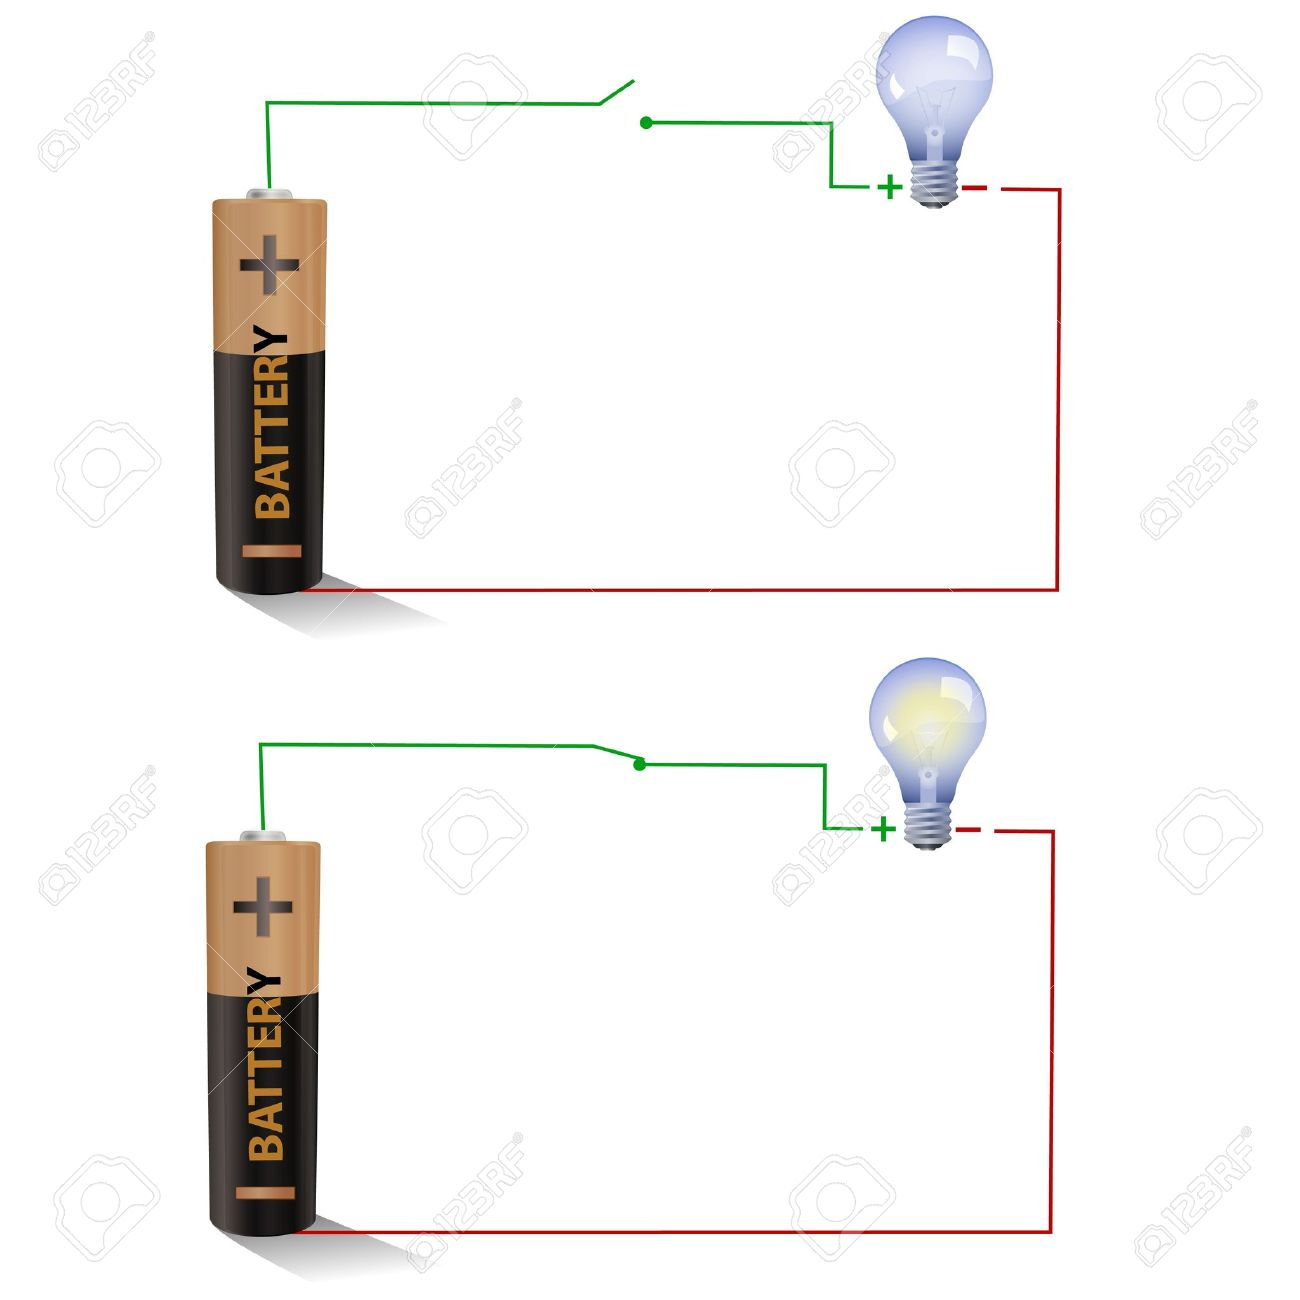 wiring ground free download diagrams pictures with Electric Circuit Clipart on 12v Switch Wiring Diagram likewise Wiring Diagram For John Deere 870 Tractor in addition Intermatic Px100 Wiring Diagram together with 4f18e Kia Amanti 2004 Kia Amanti Car Seat Heaters moreover Honda 300 Fourtrax Ignition Wiring Diagram.